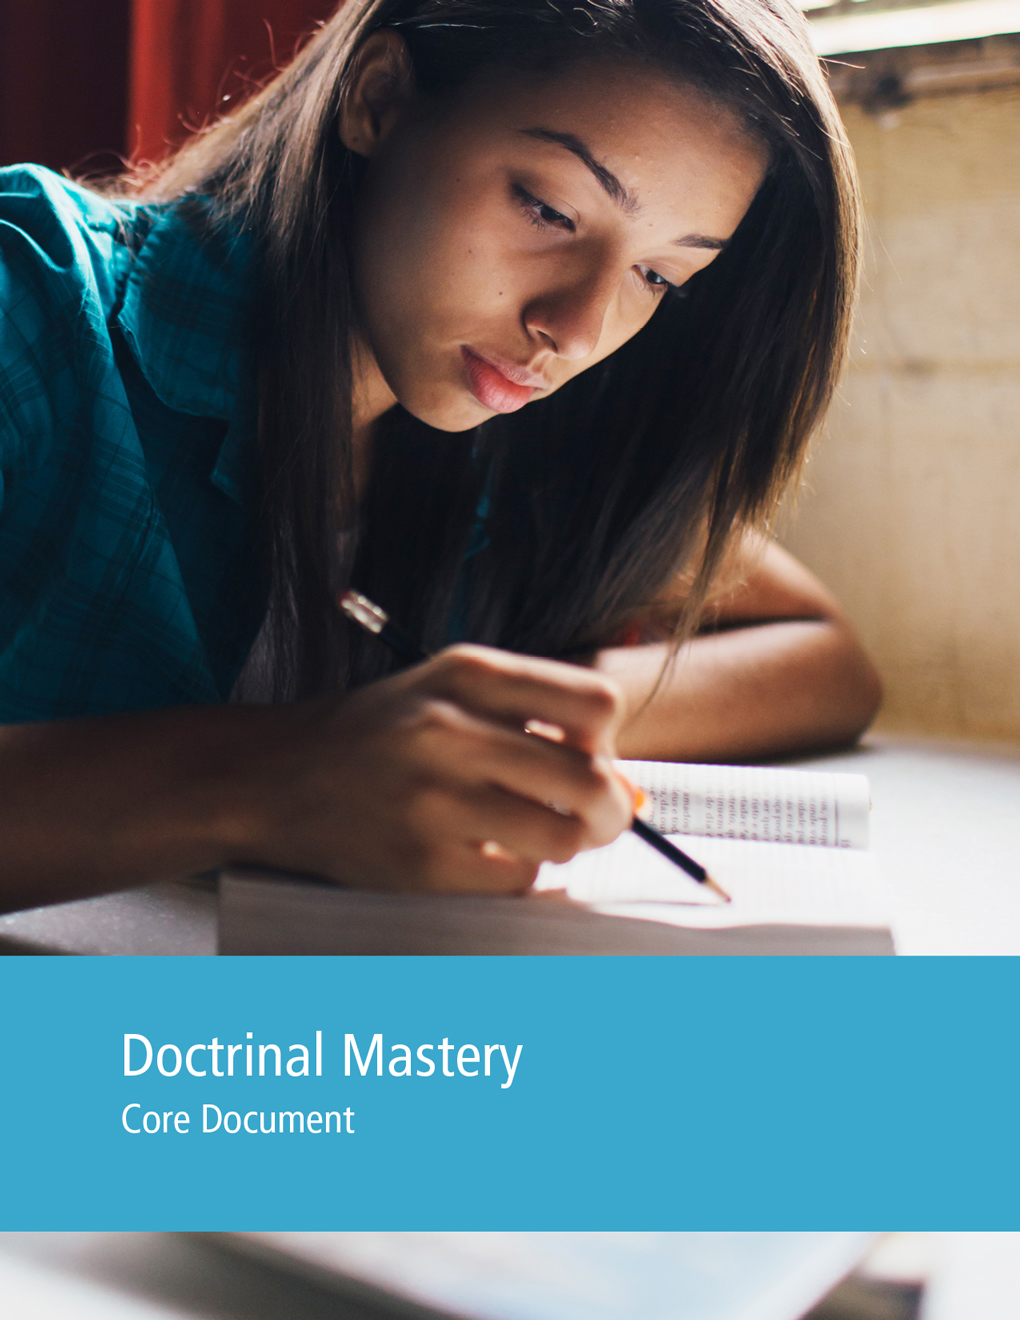 Doctrinal Mastery Core Document Cover